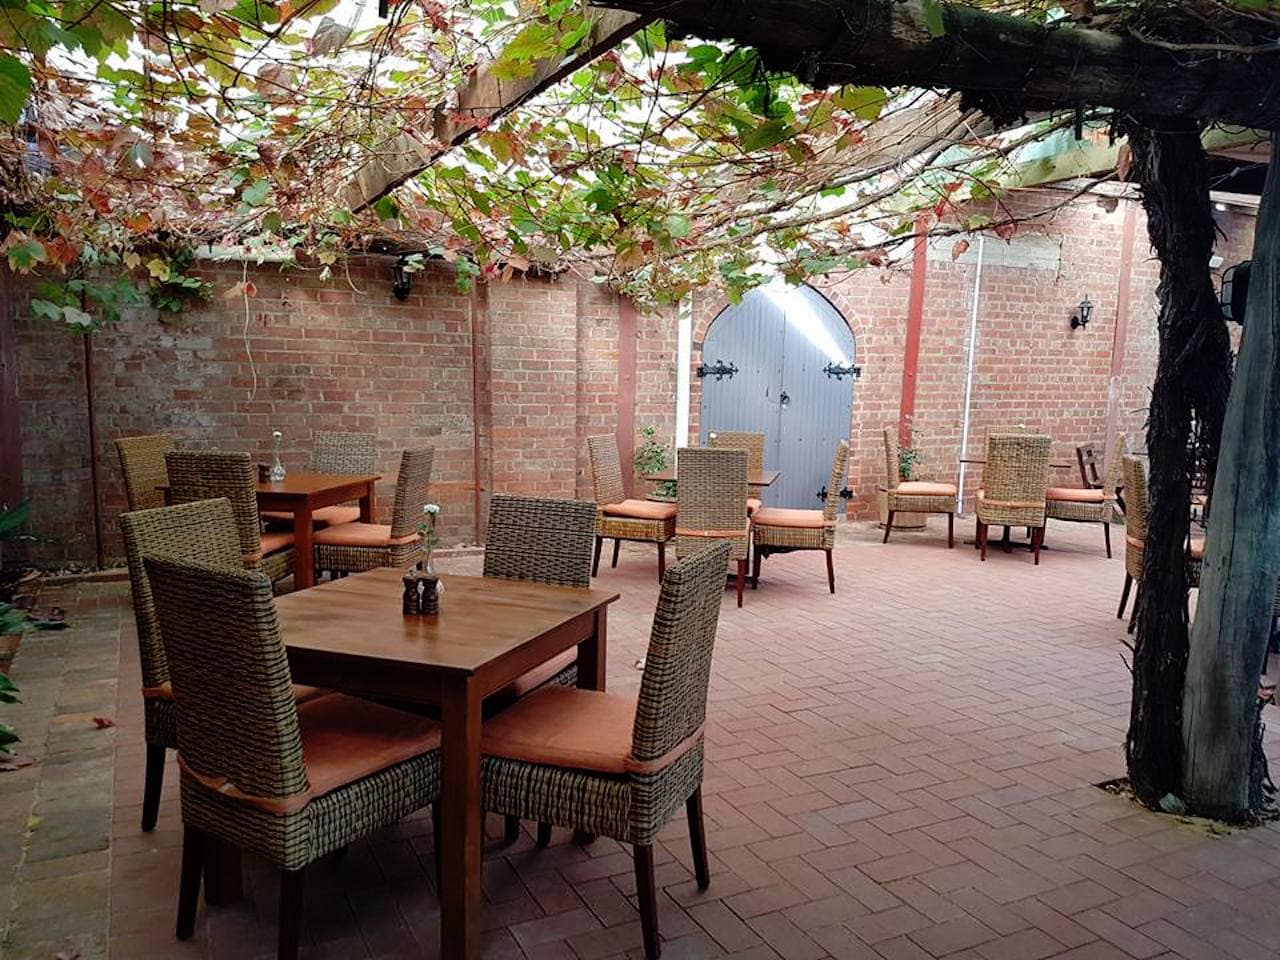 Tables And Rattan Chairs In An Open Area Under A Ceiling Full of Leaves With Brick Wall